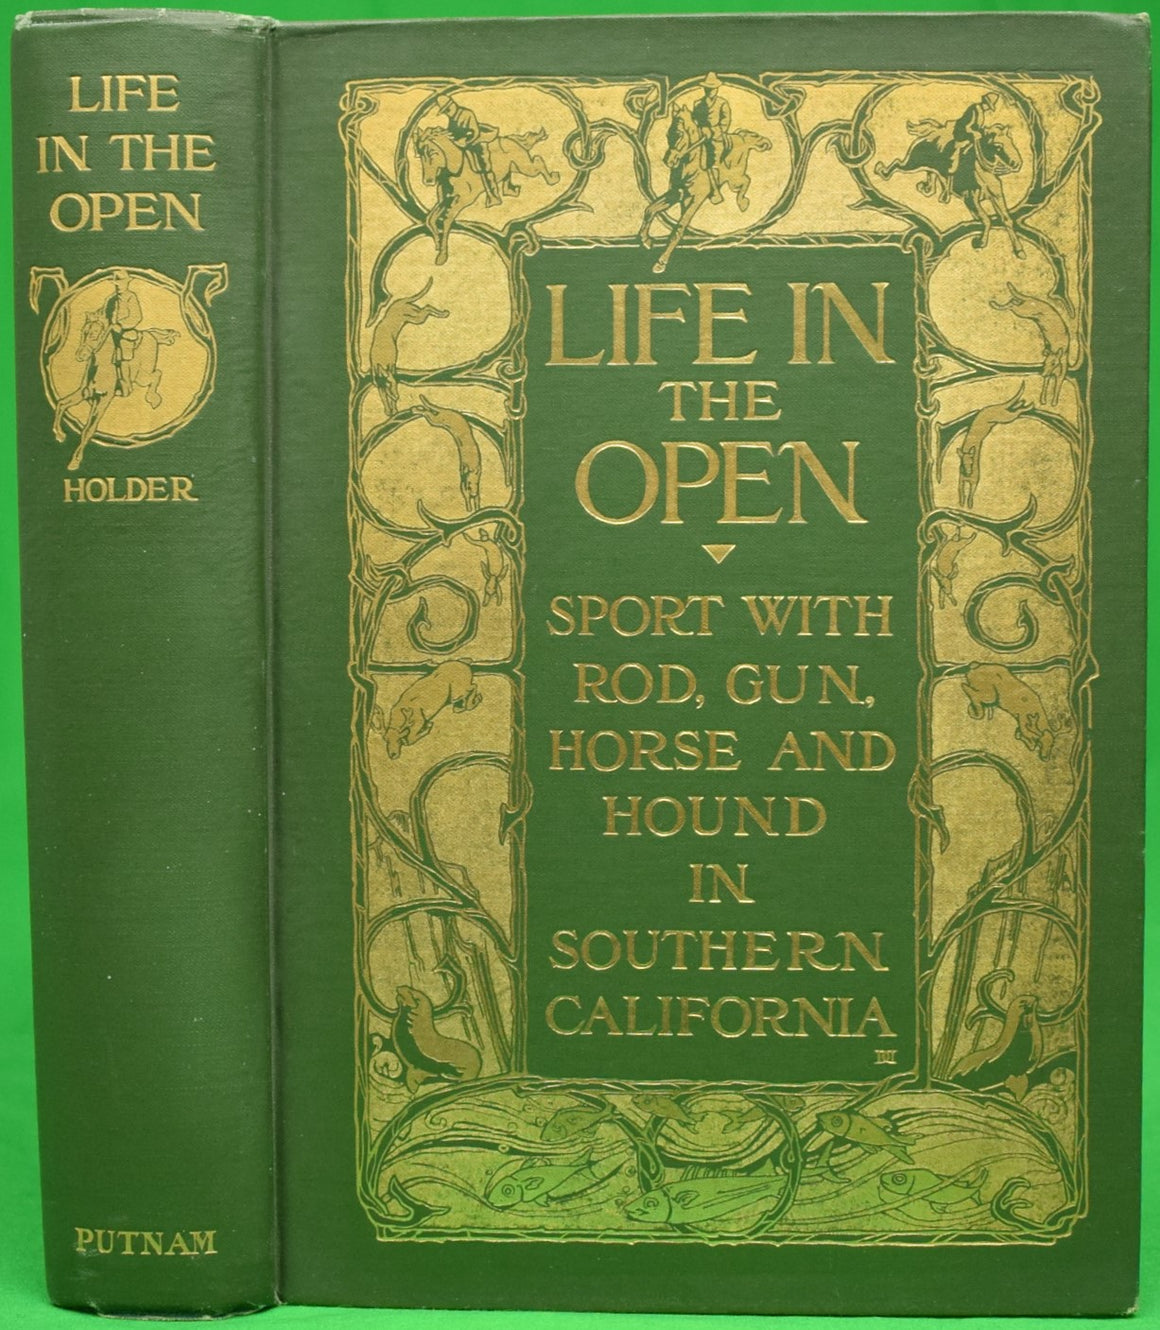 """Life in the Open: Sport with Rod, Gun, Horse and Hound in Southern California"" HOLDER, Charles Frederick"